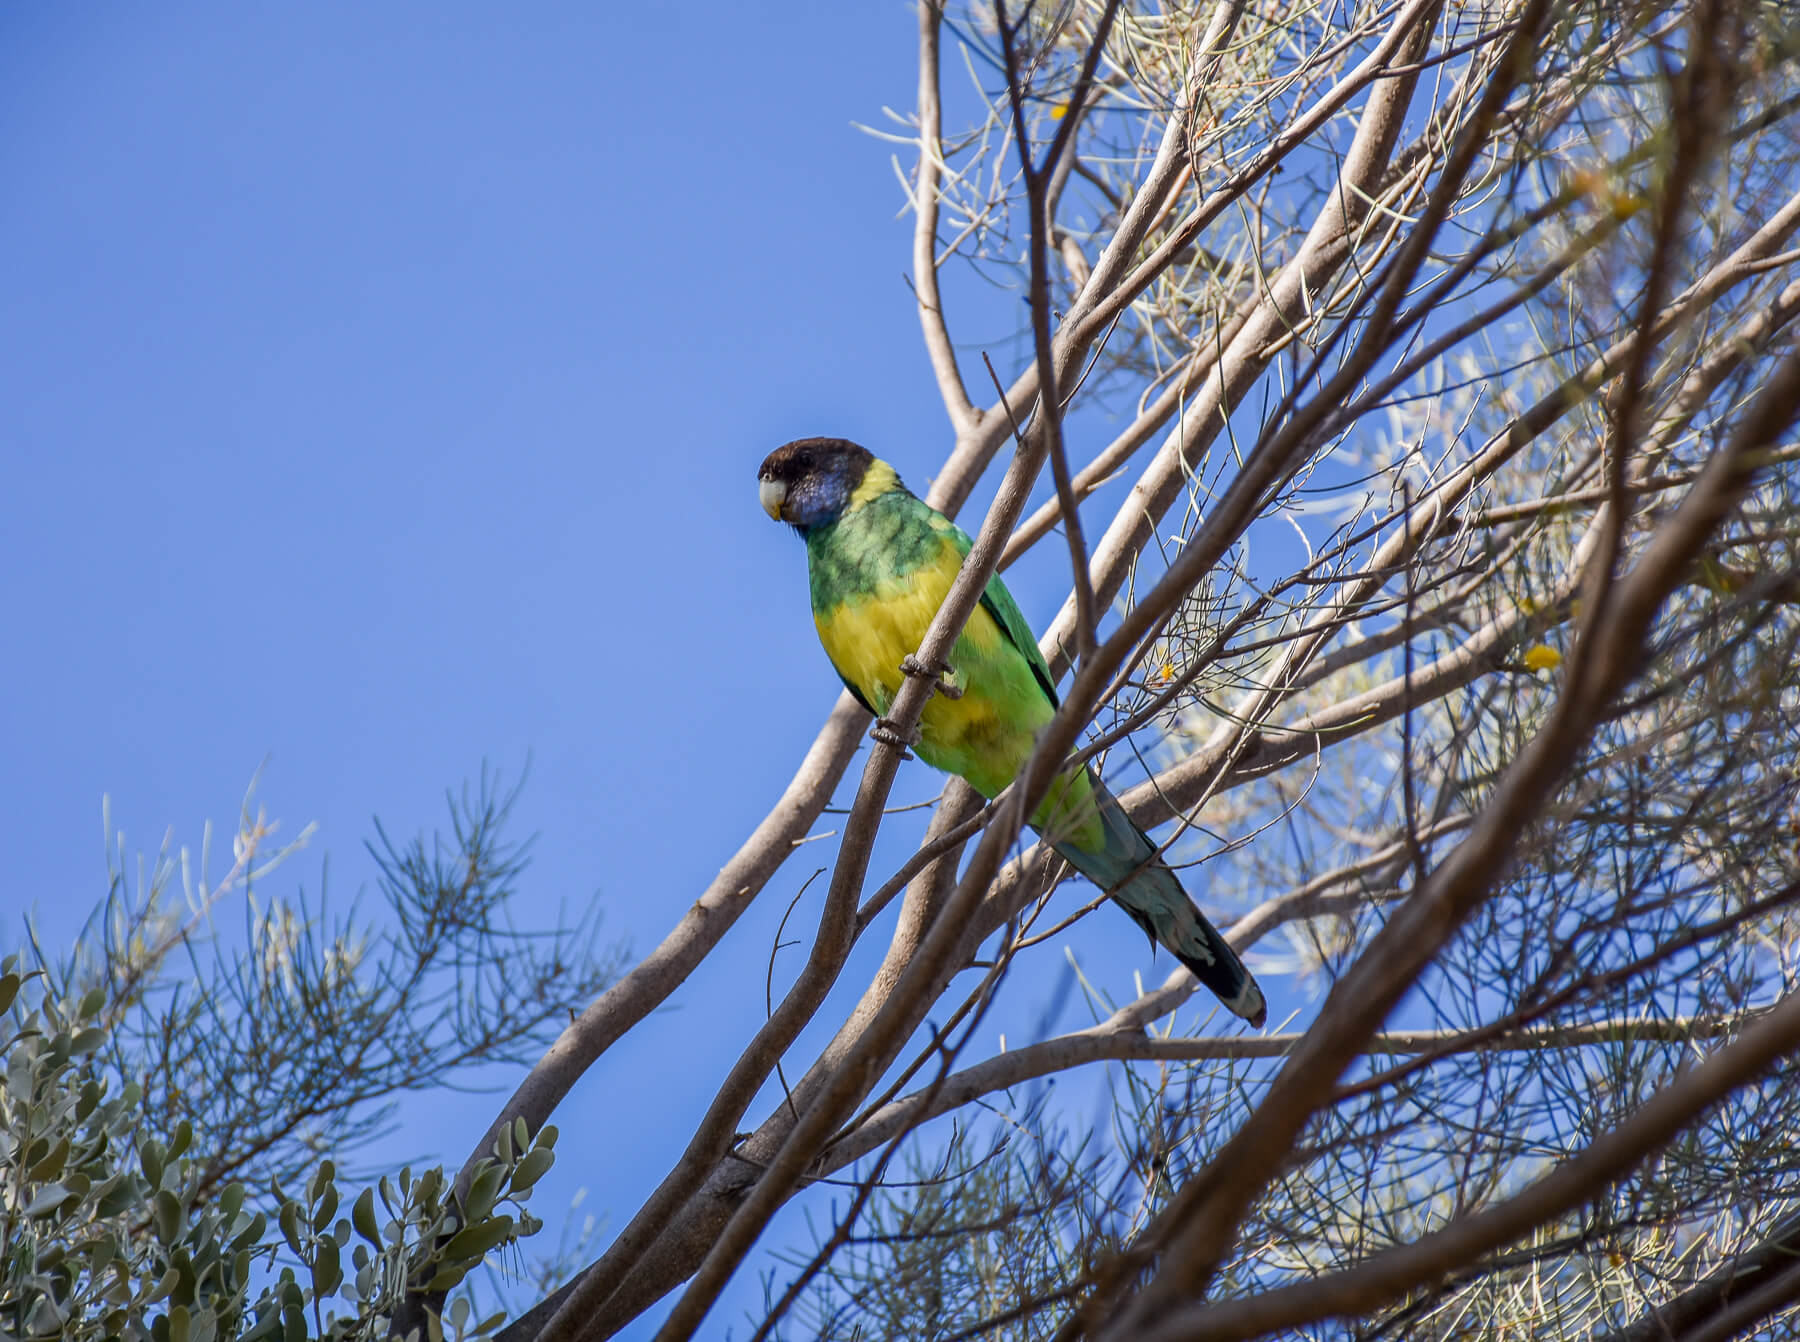 Green/Yellow Parrot with Black Head, perched on a branch